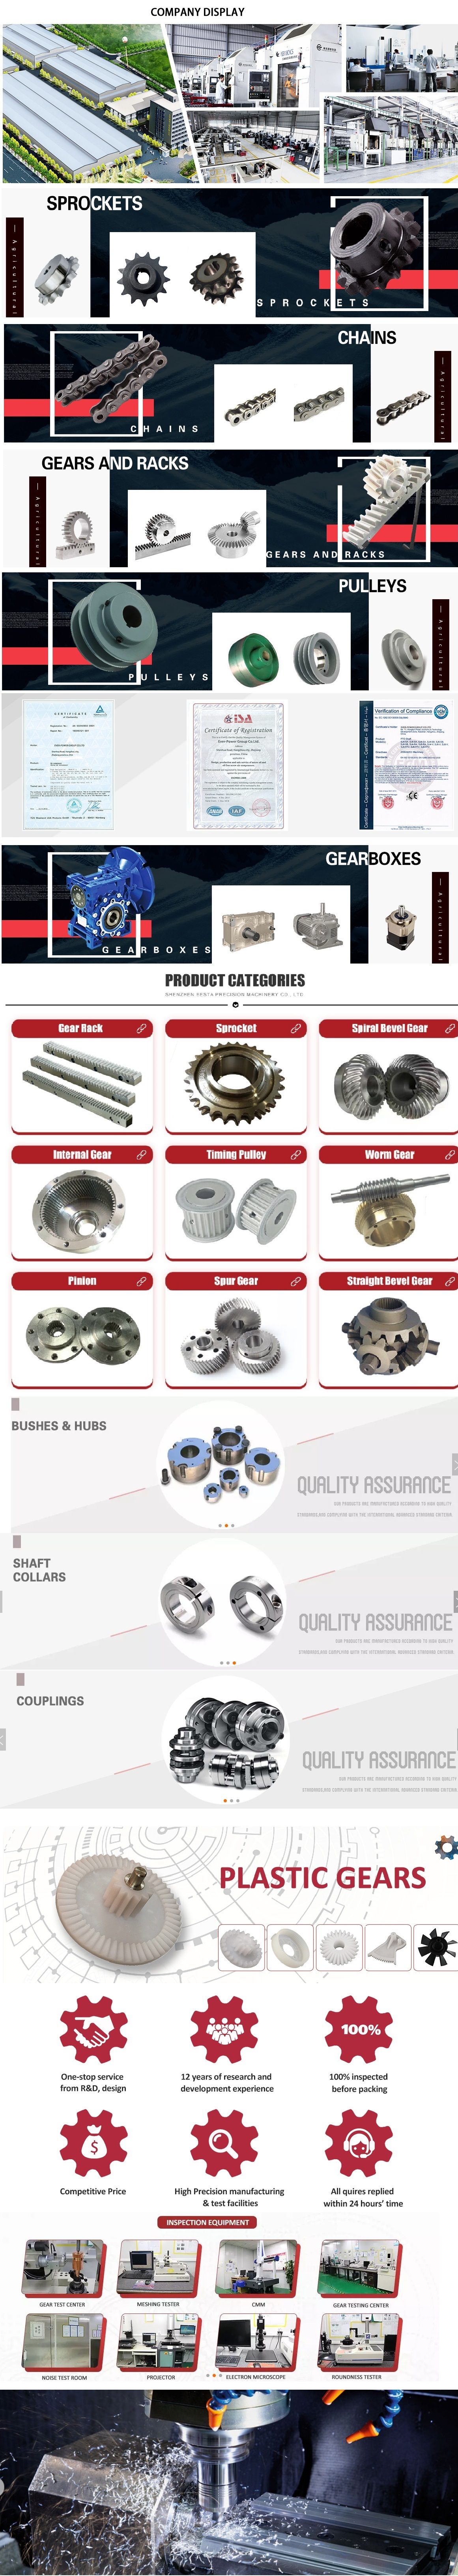 in Siliguri India  sales   price   shop   near me   near me shop   factory   supplier Wpa Wps Wpks Wpka Wpwka Shaft Mounted Gearbox, Worm Gear Reducer with Motor manufacturer   best   Cost   Custom   Cheap   wholesaler